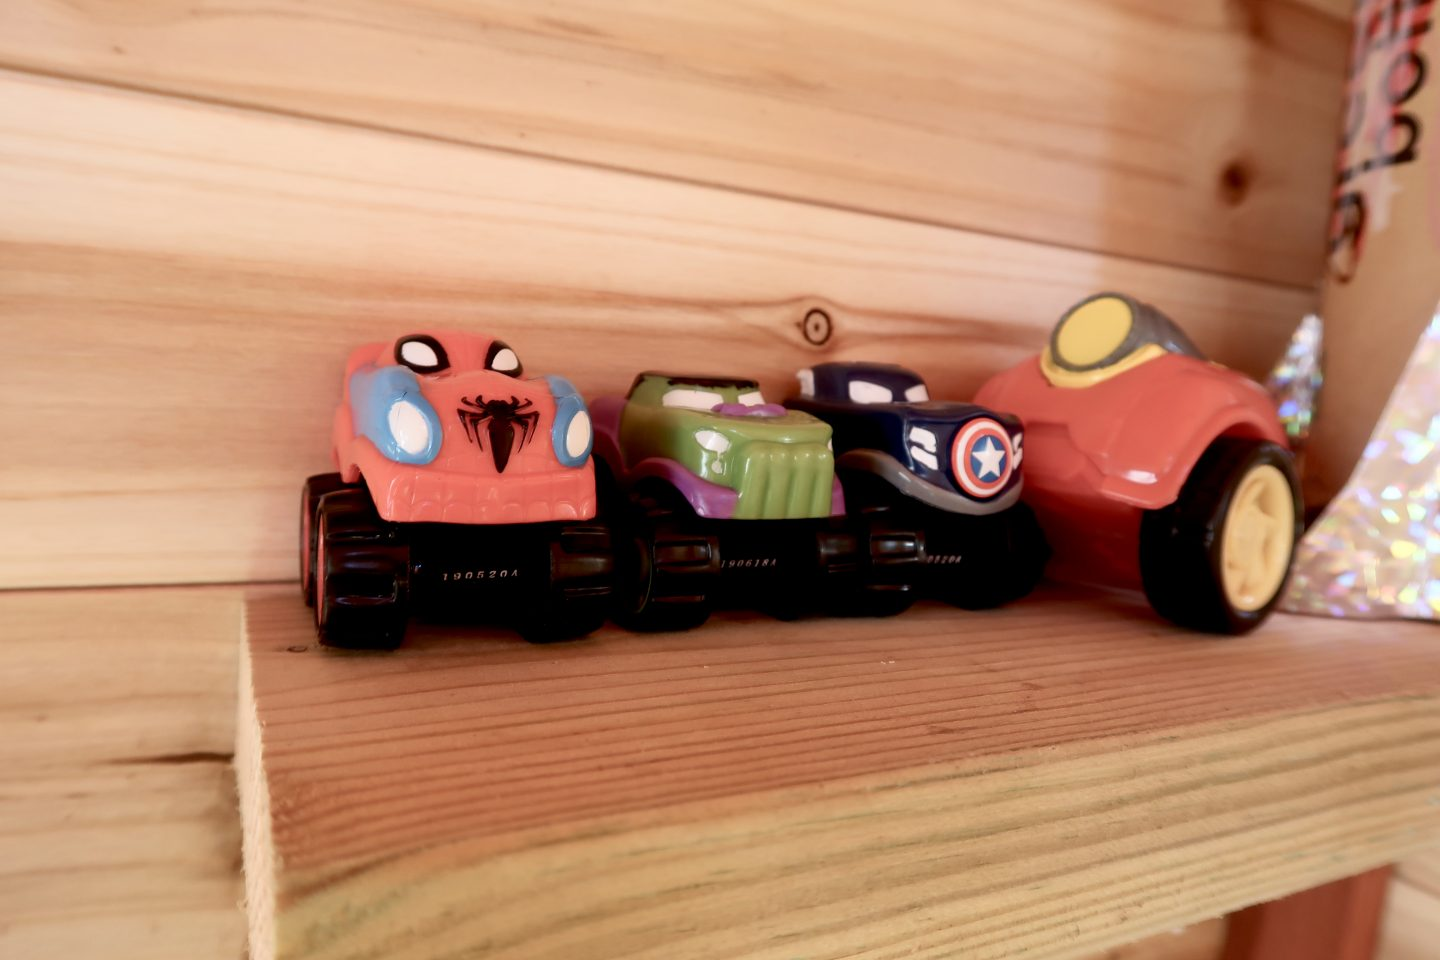 toy cars on a shelf, decorated in super hero designs